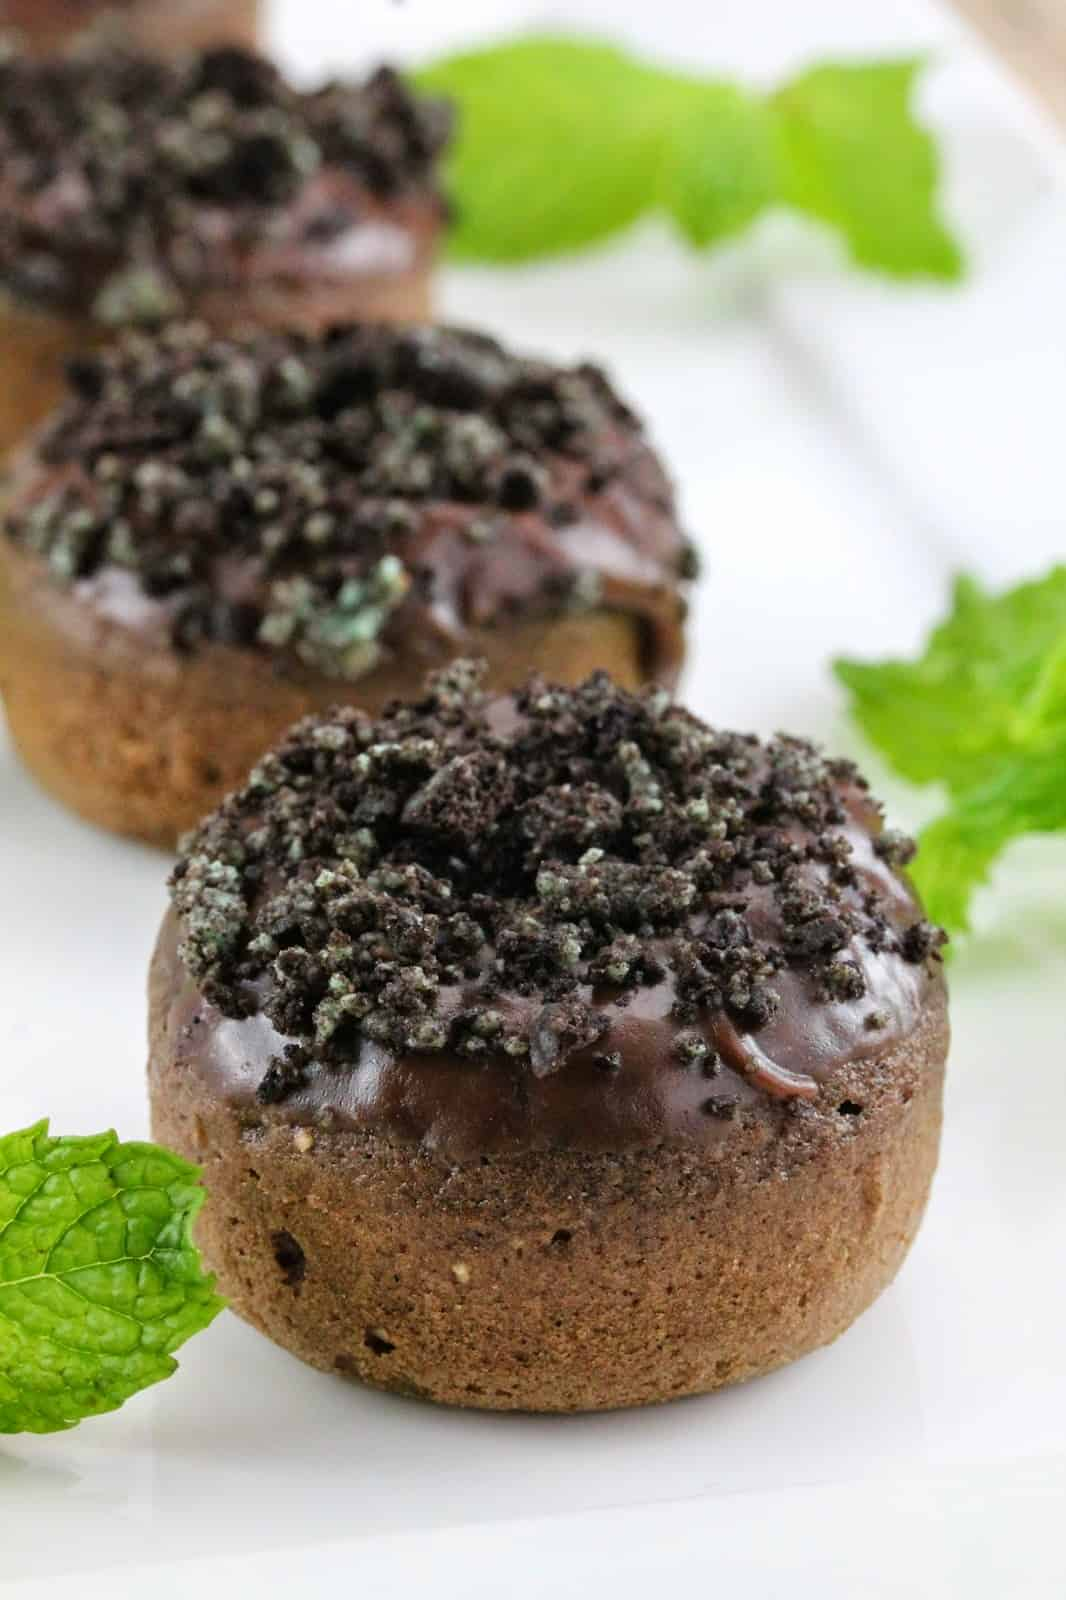 Baked chocolate donuts with mint frosting